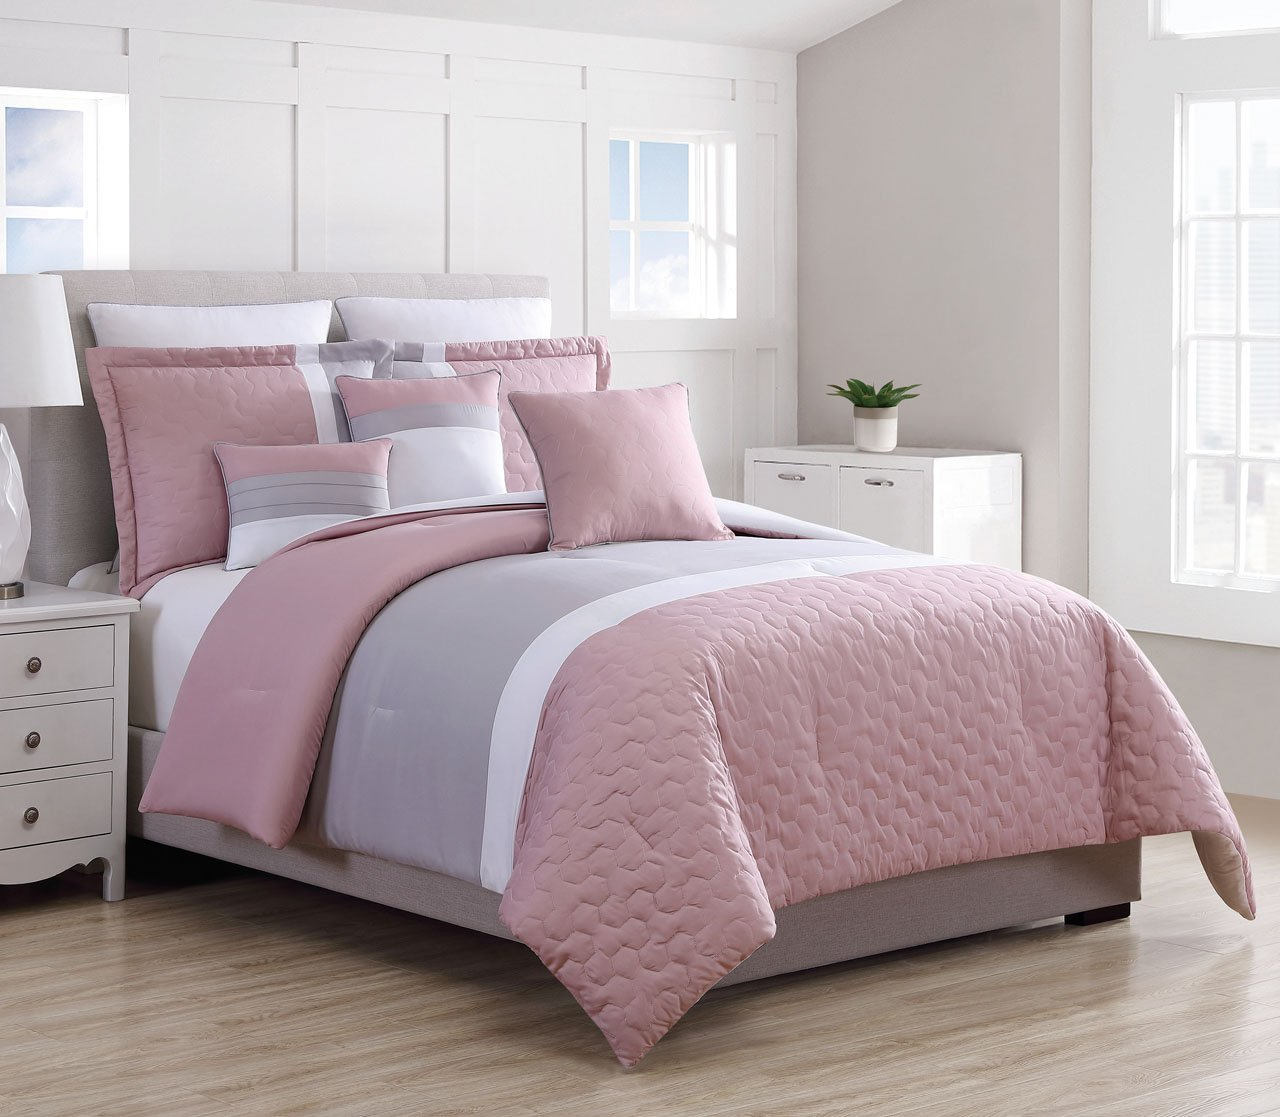 12 Piece Emma Pink/Gray Bed in a Bag Set King